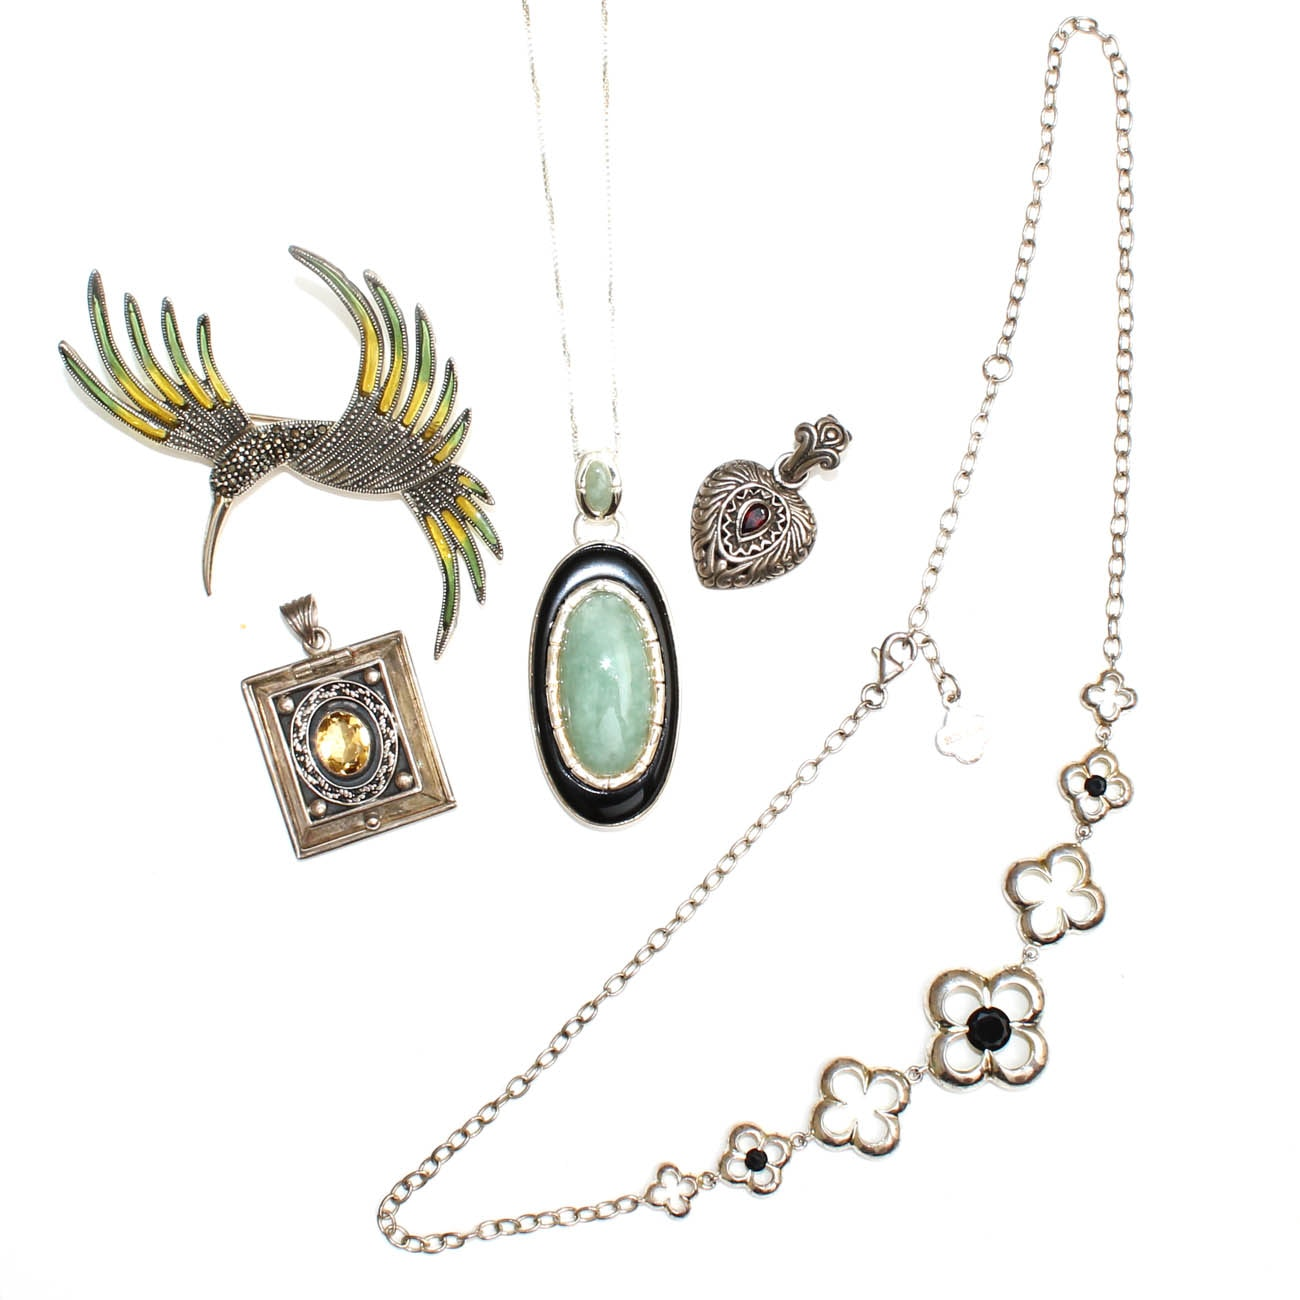 Sterling Silver Necklace and Pendant Selection with Gemstones